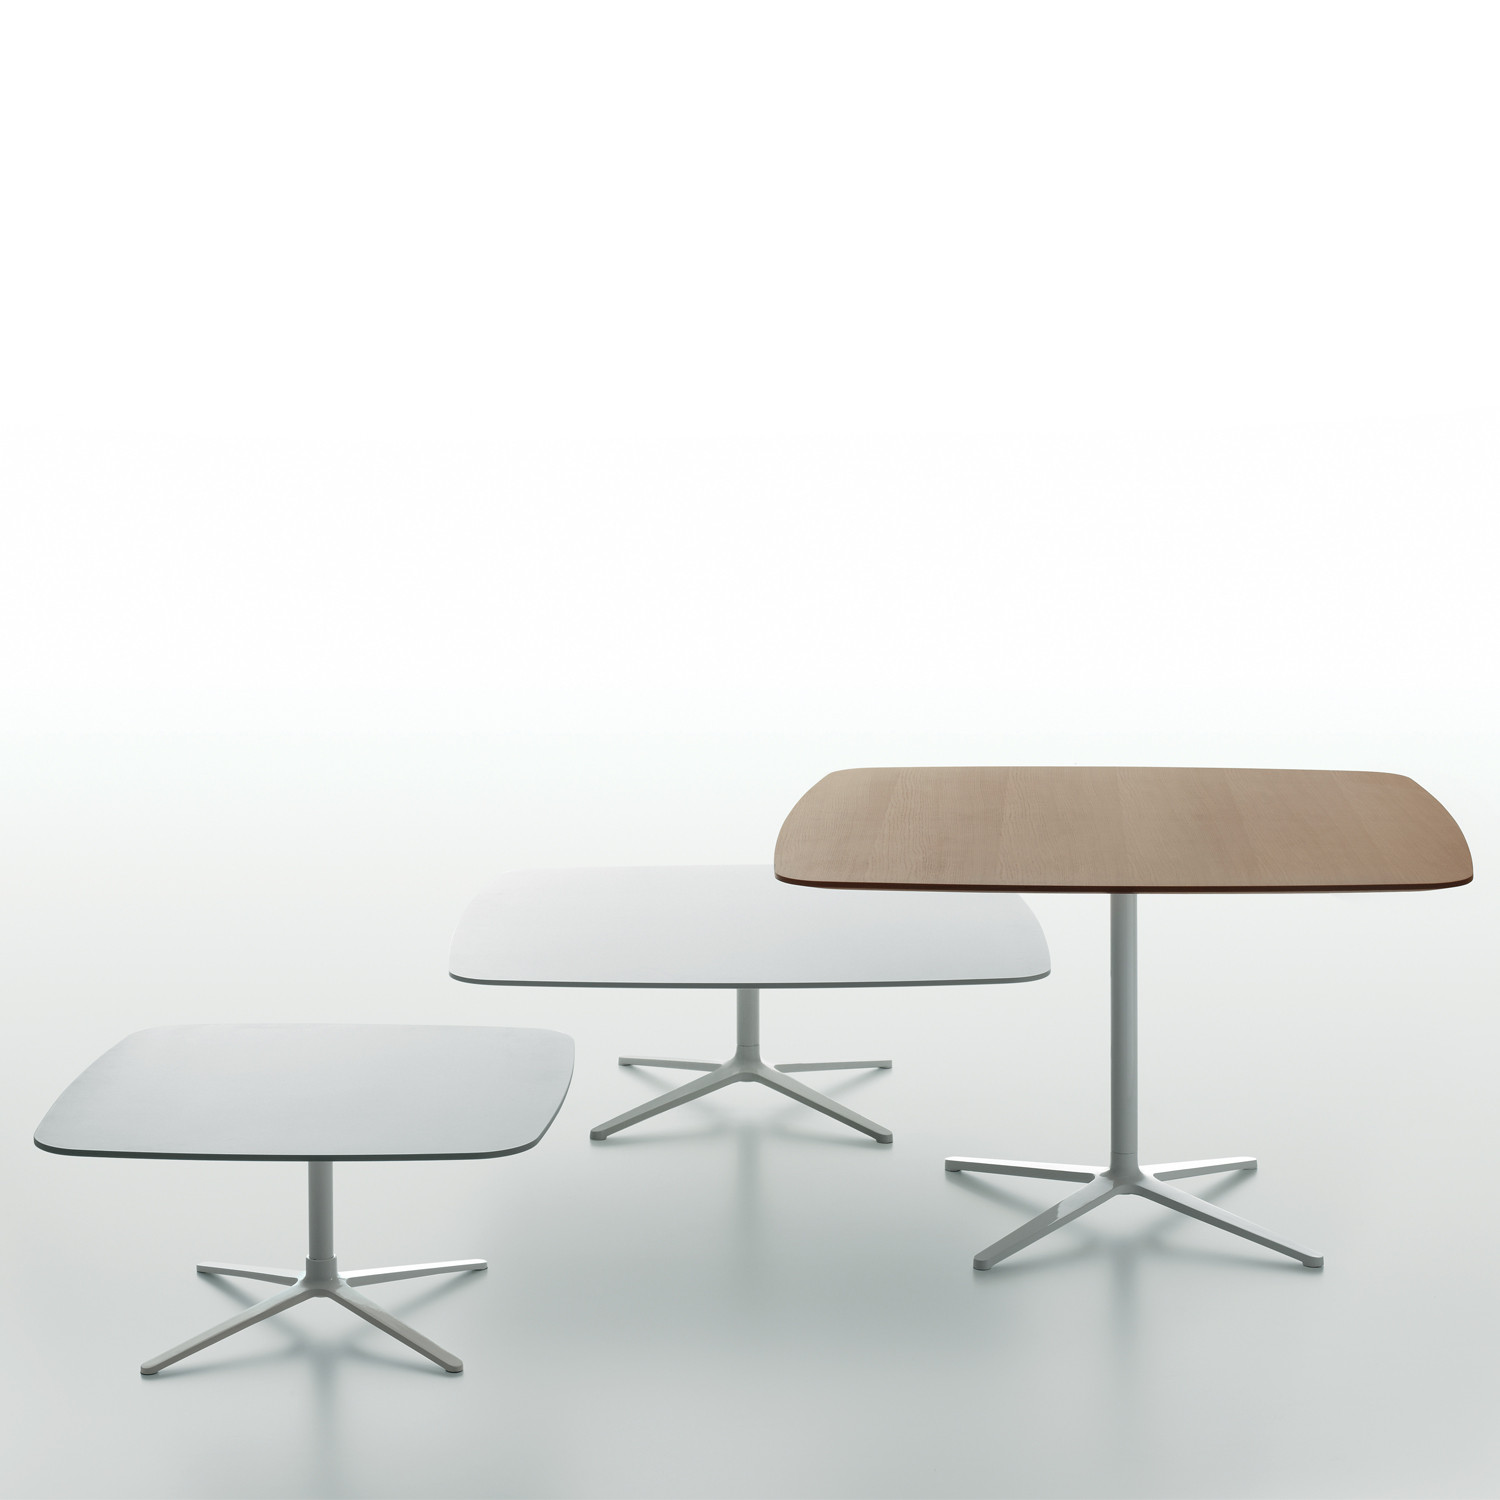 Plato Breakout Tables